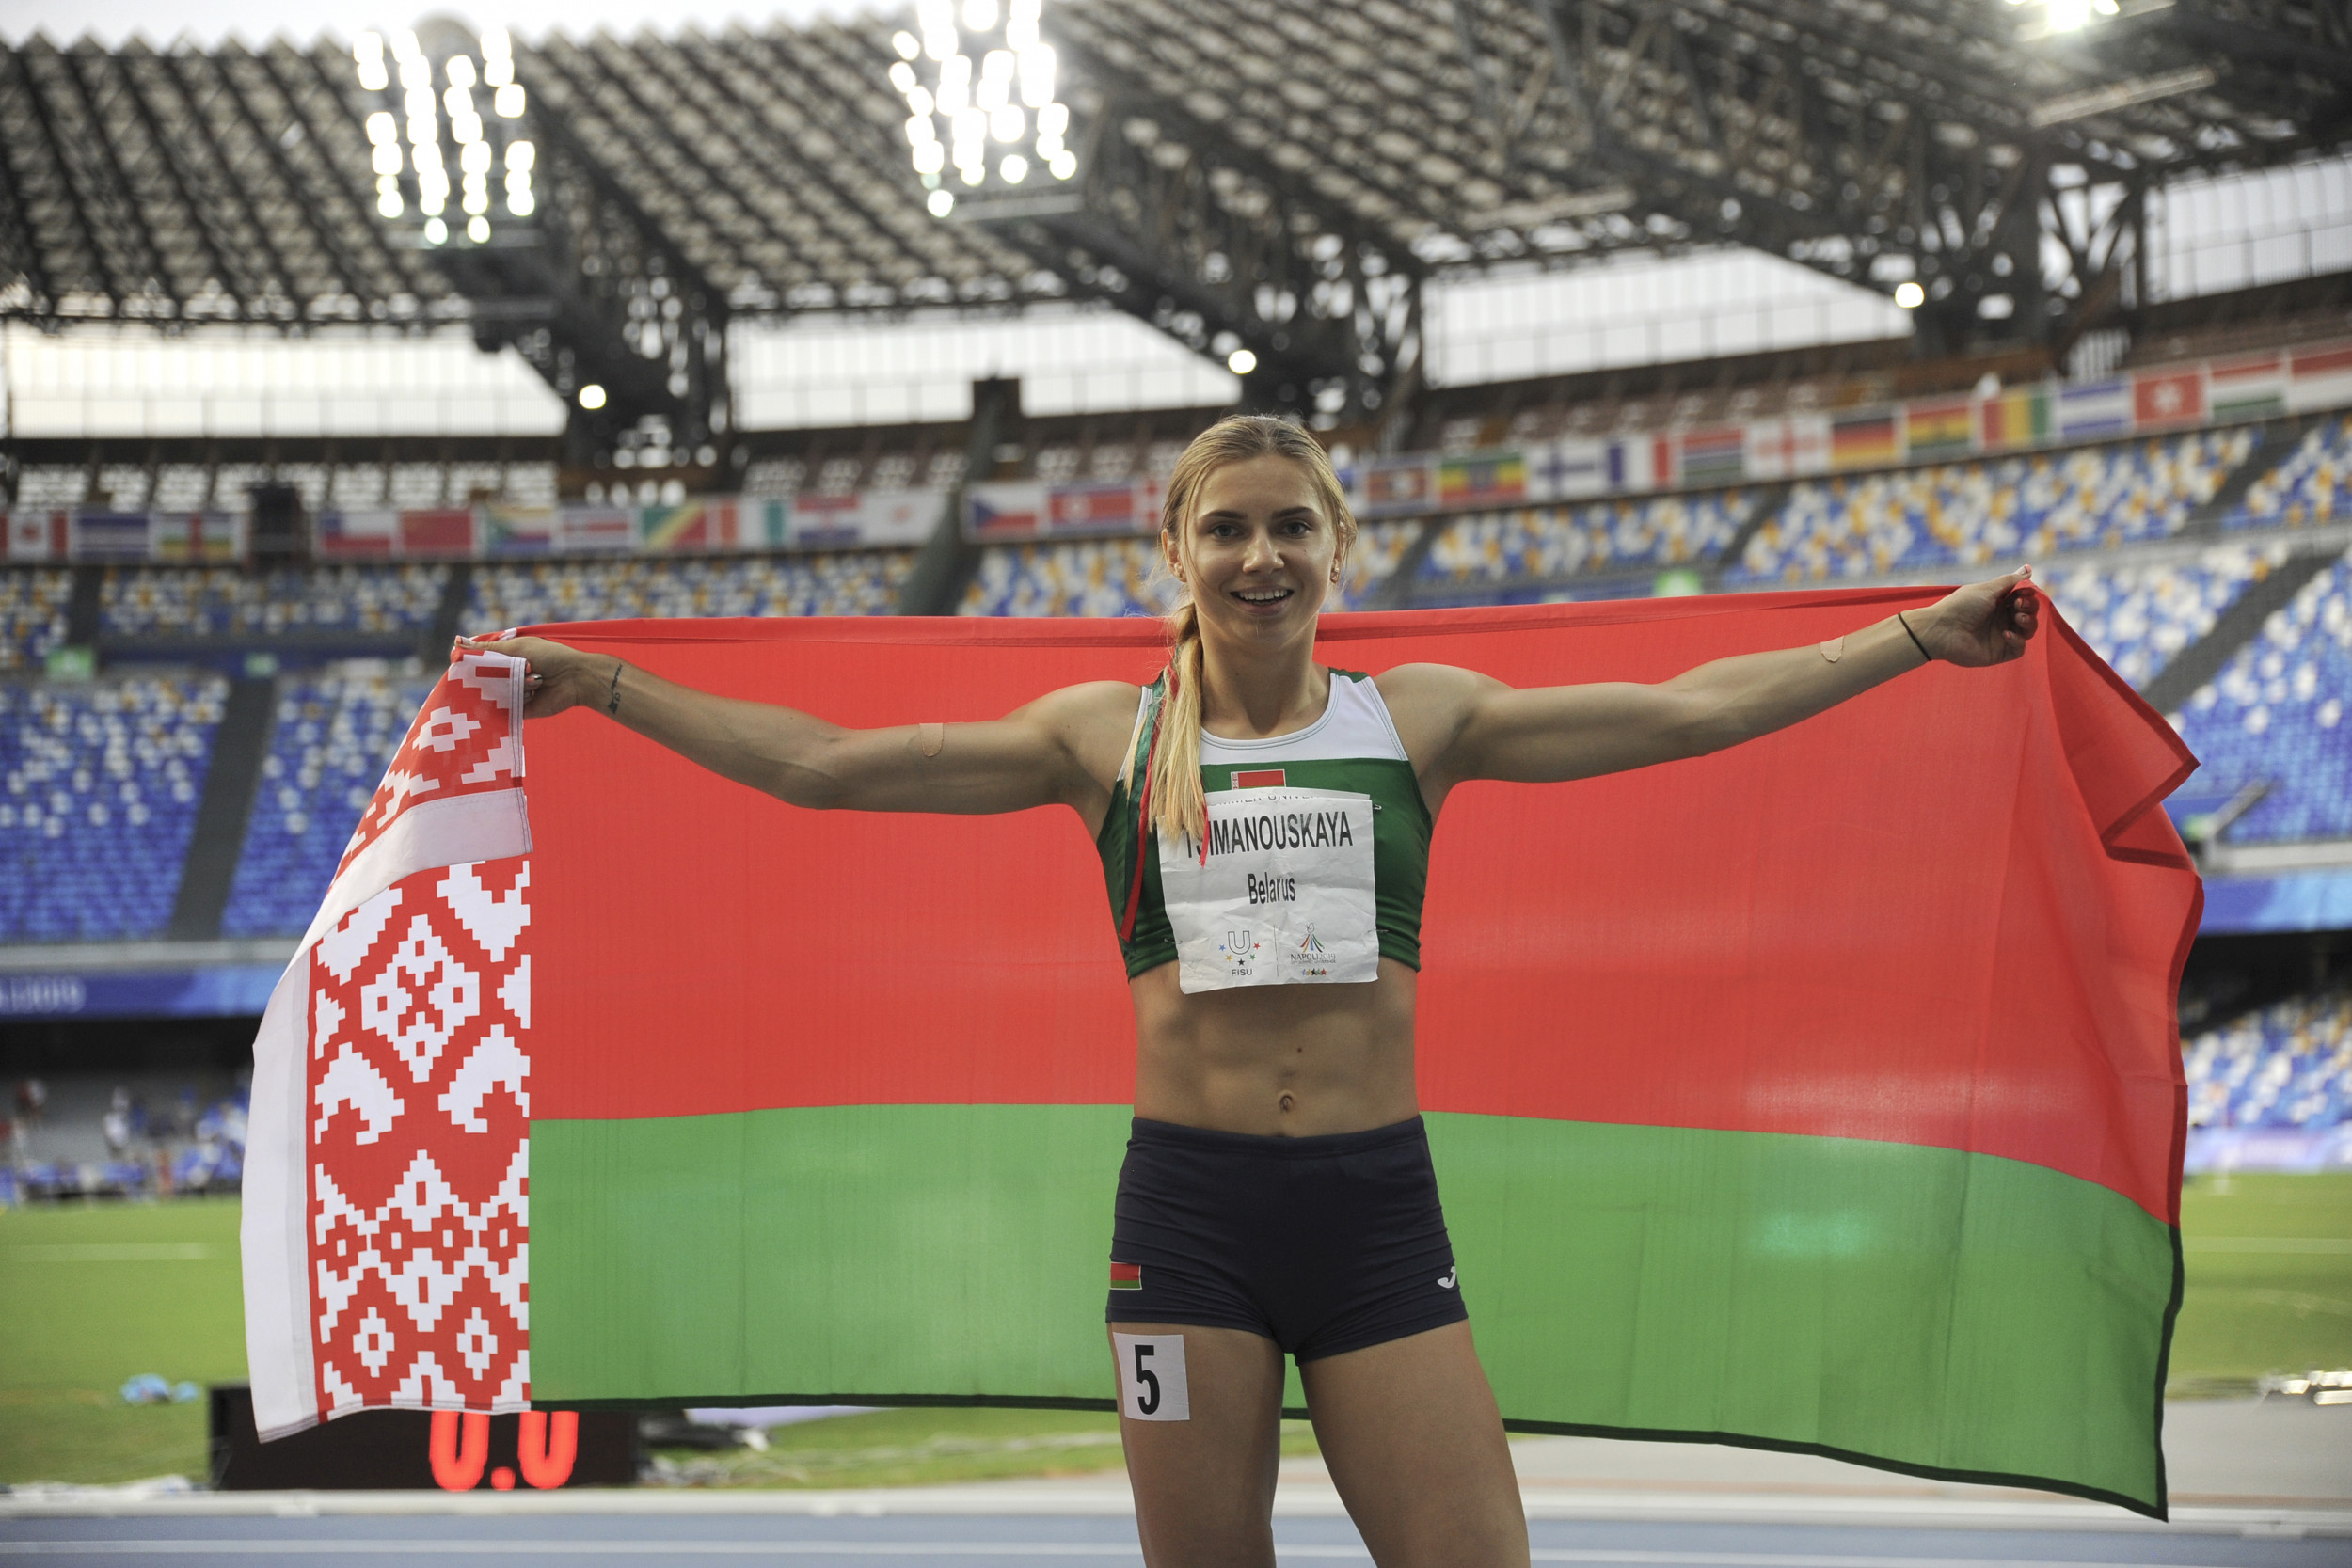 Belarus Sprinter Says She Was Forcibly Removed From Olympics